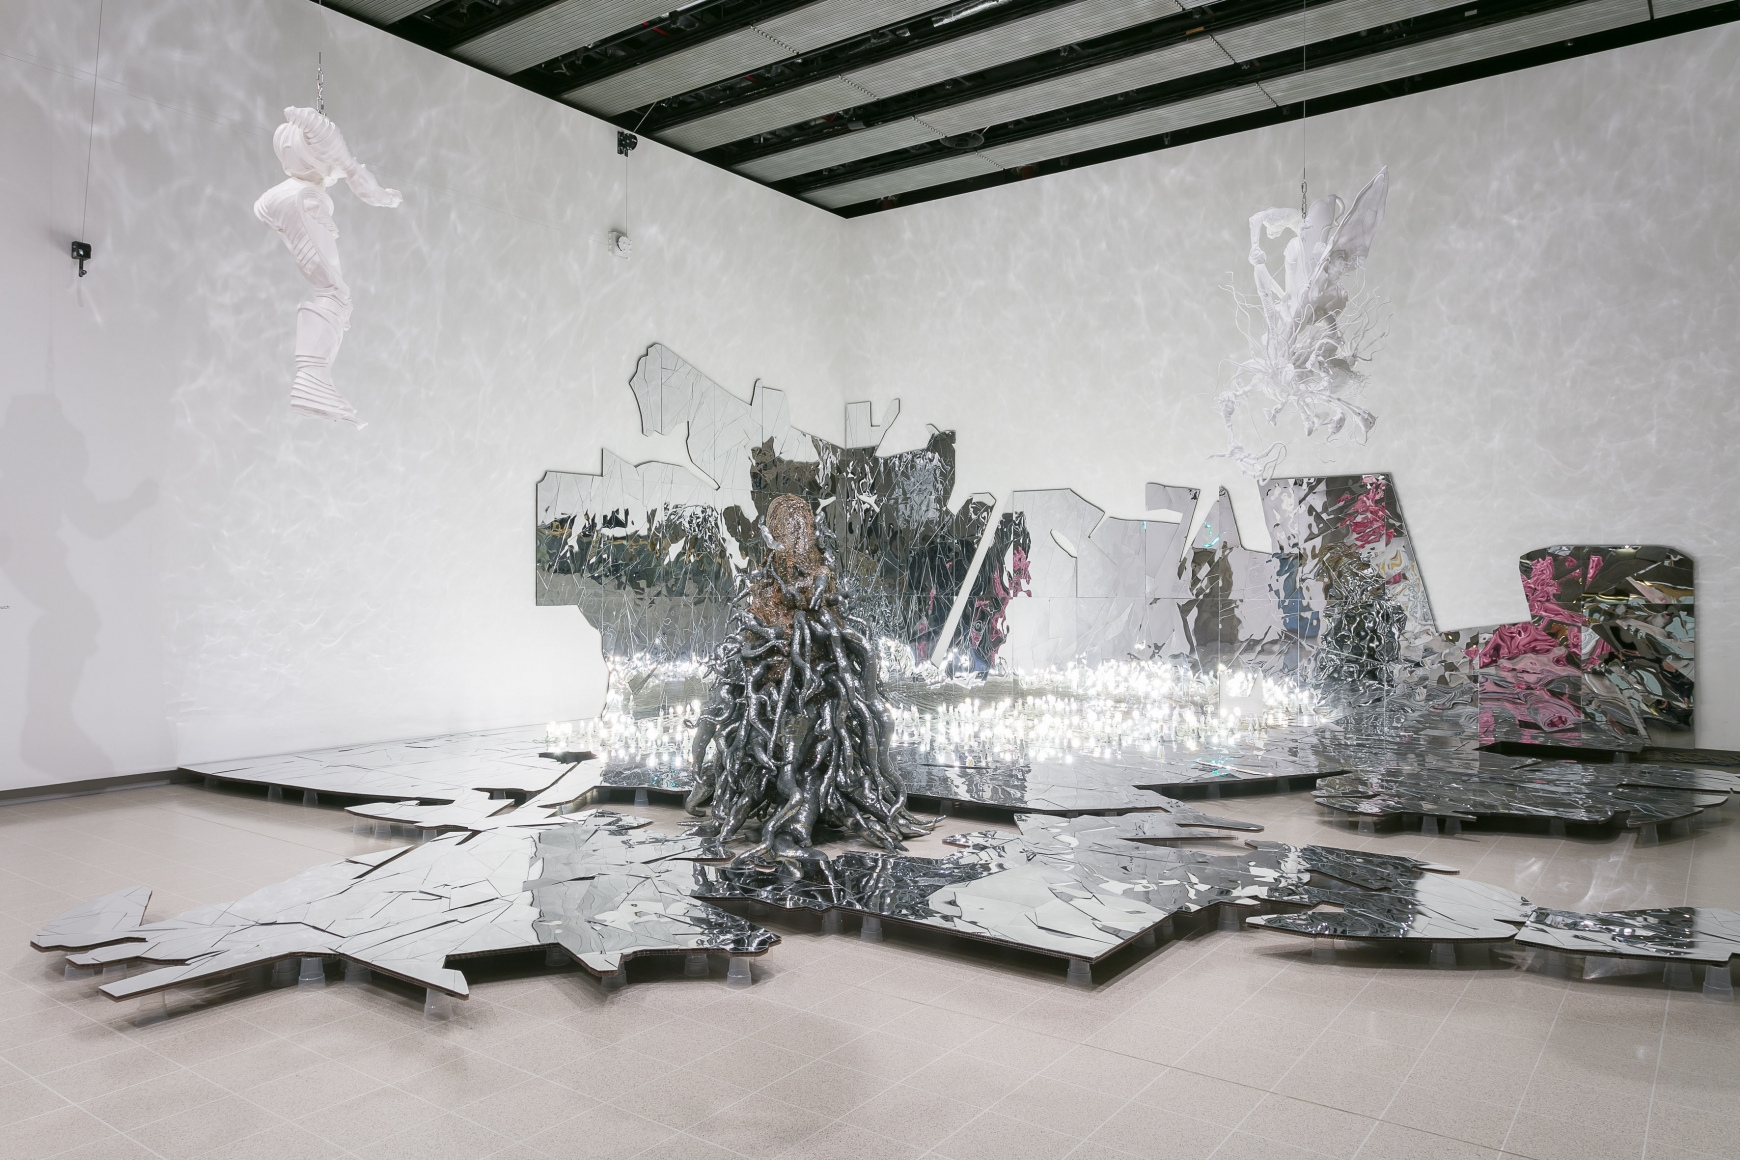 LEE BUL, Lee Bul: Crashing